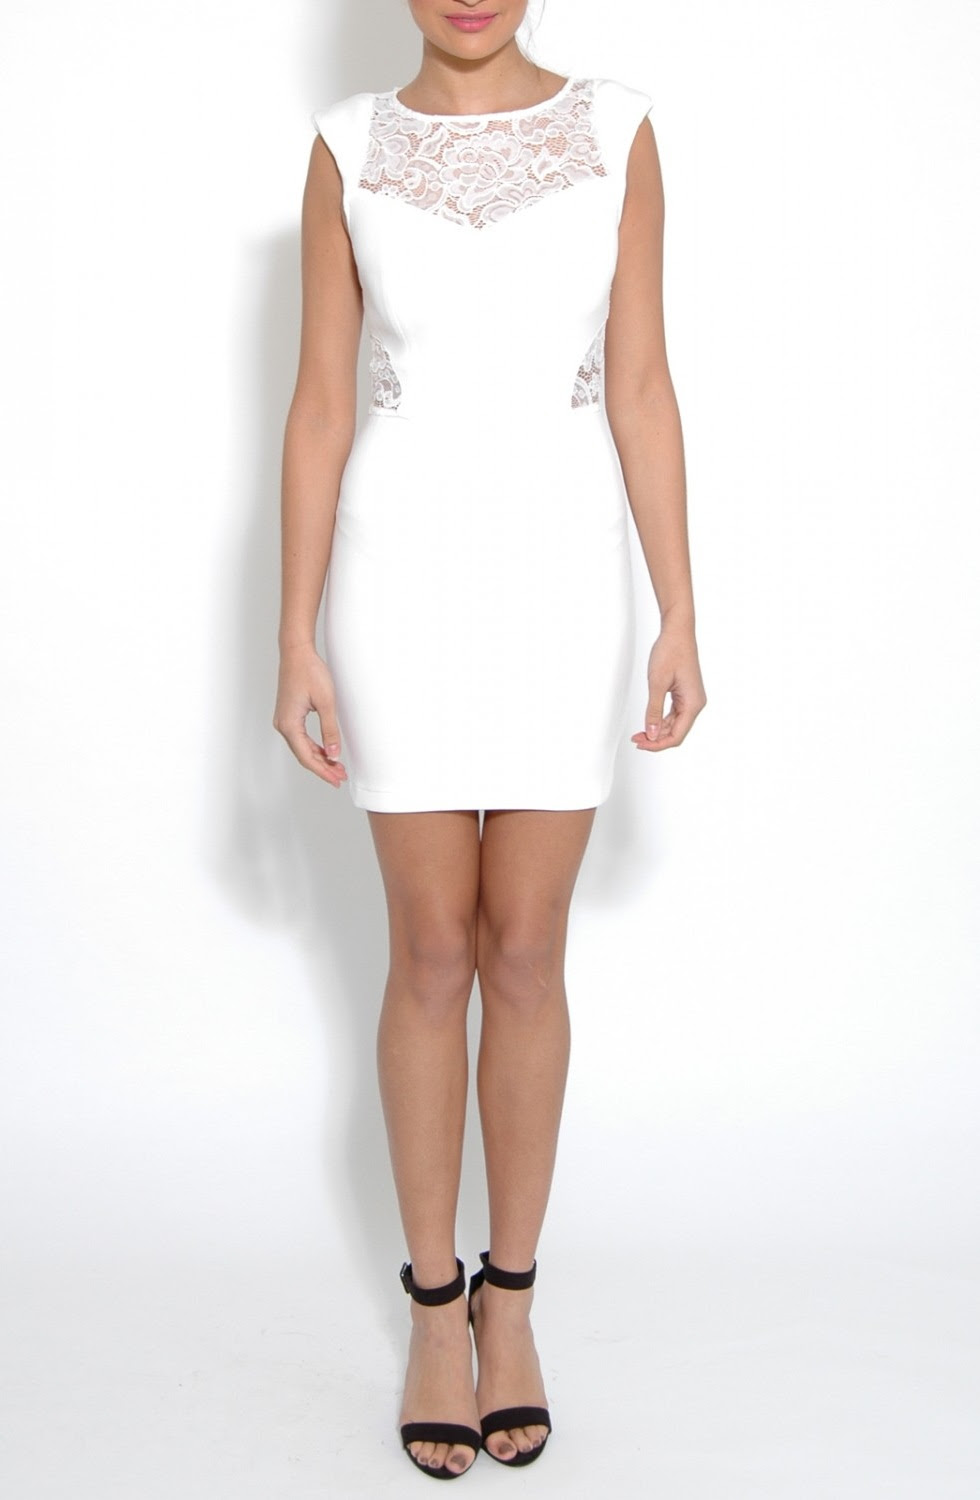 Different body dress types in on children bodycon tall sizes knoxville